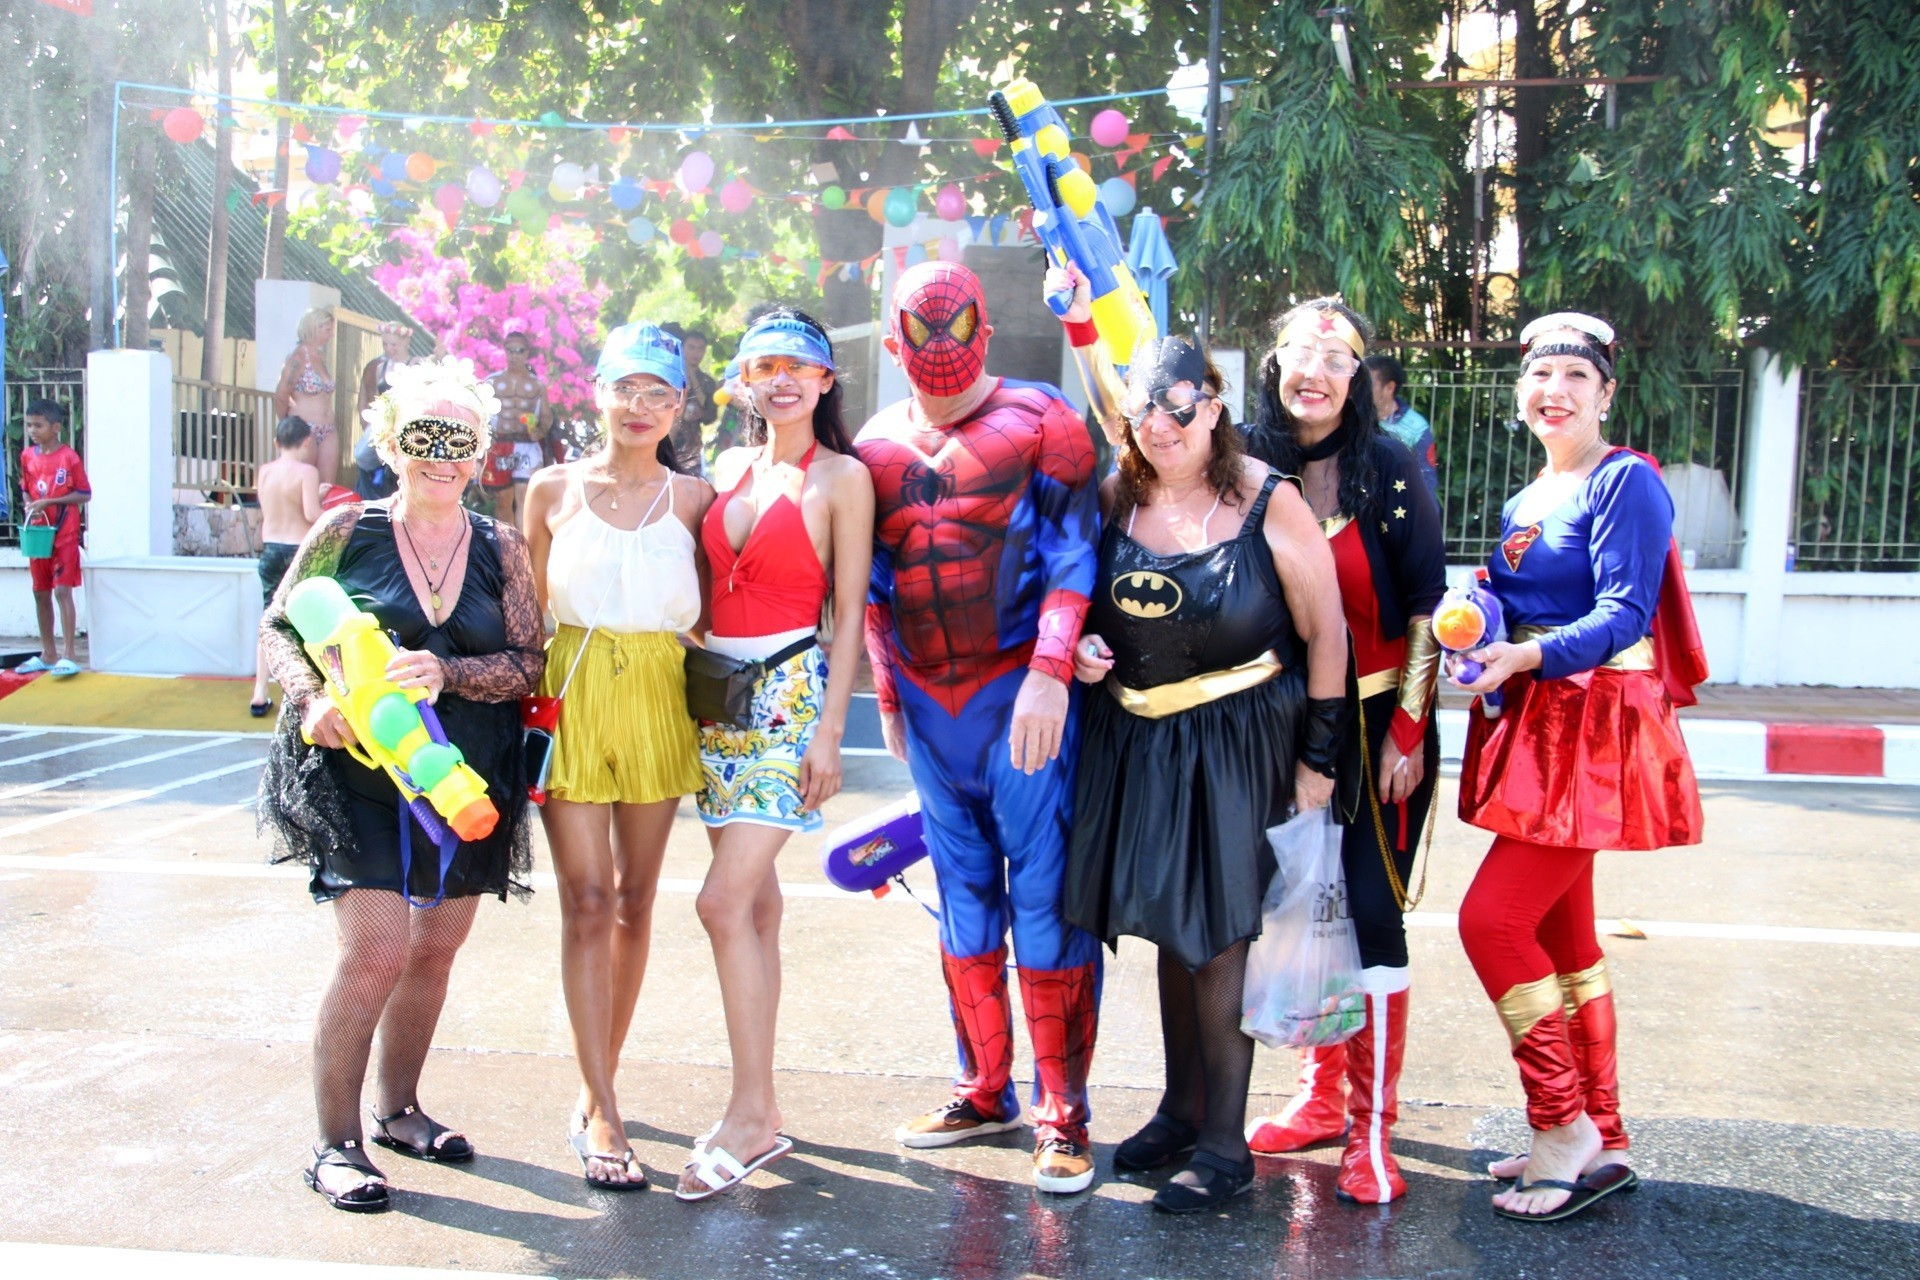 Dusit Thani Pattaya joined Pattaya City's Post-Songkran celebration 'Wan Lai